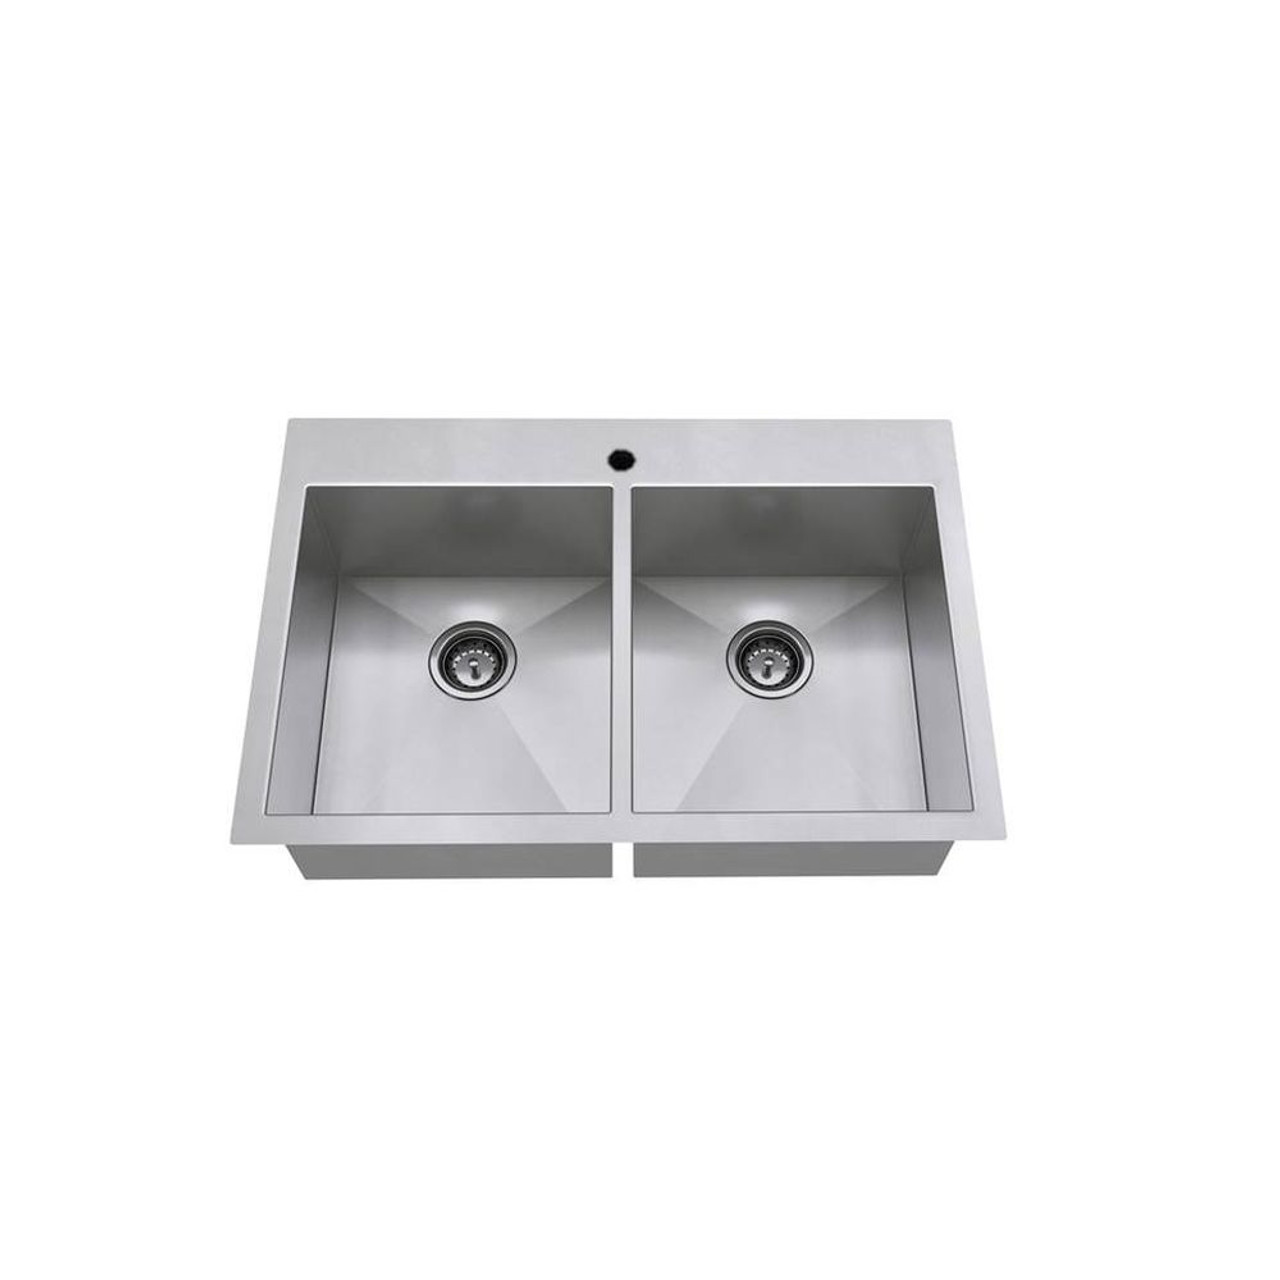 American Standard Edgewater 33 In Double Basin Kitchen Sink With Single Faucet Hole In Stainless 18db 9332211 075 Online Bath1 Com